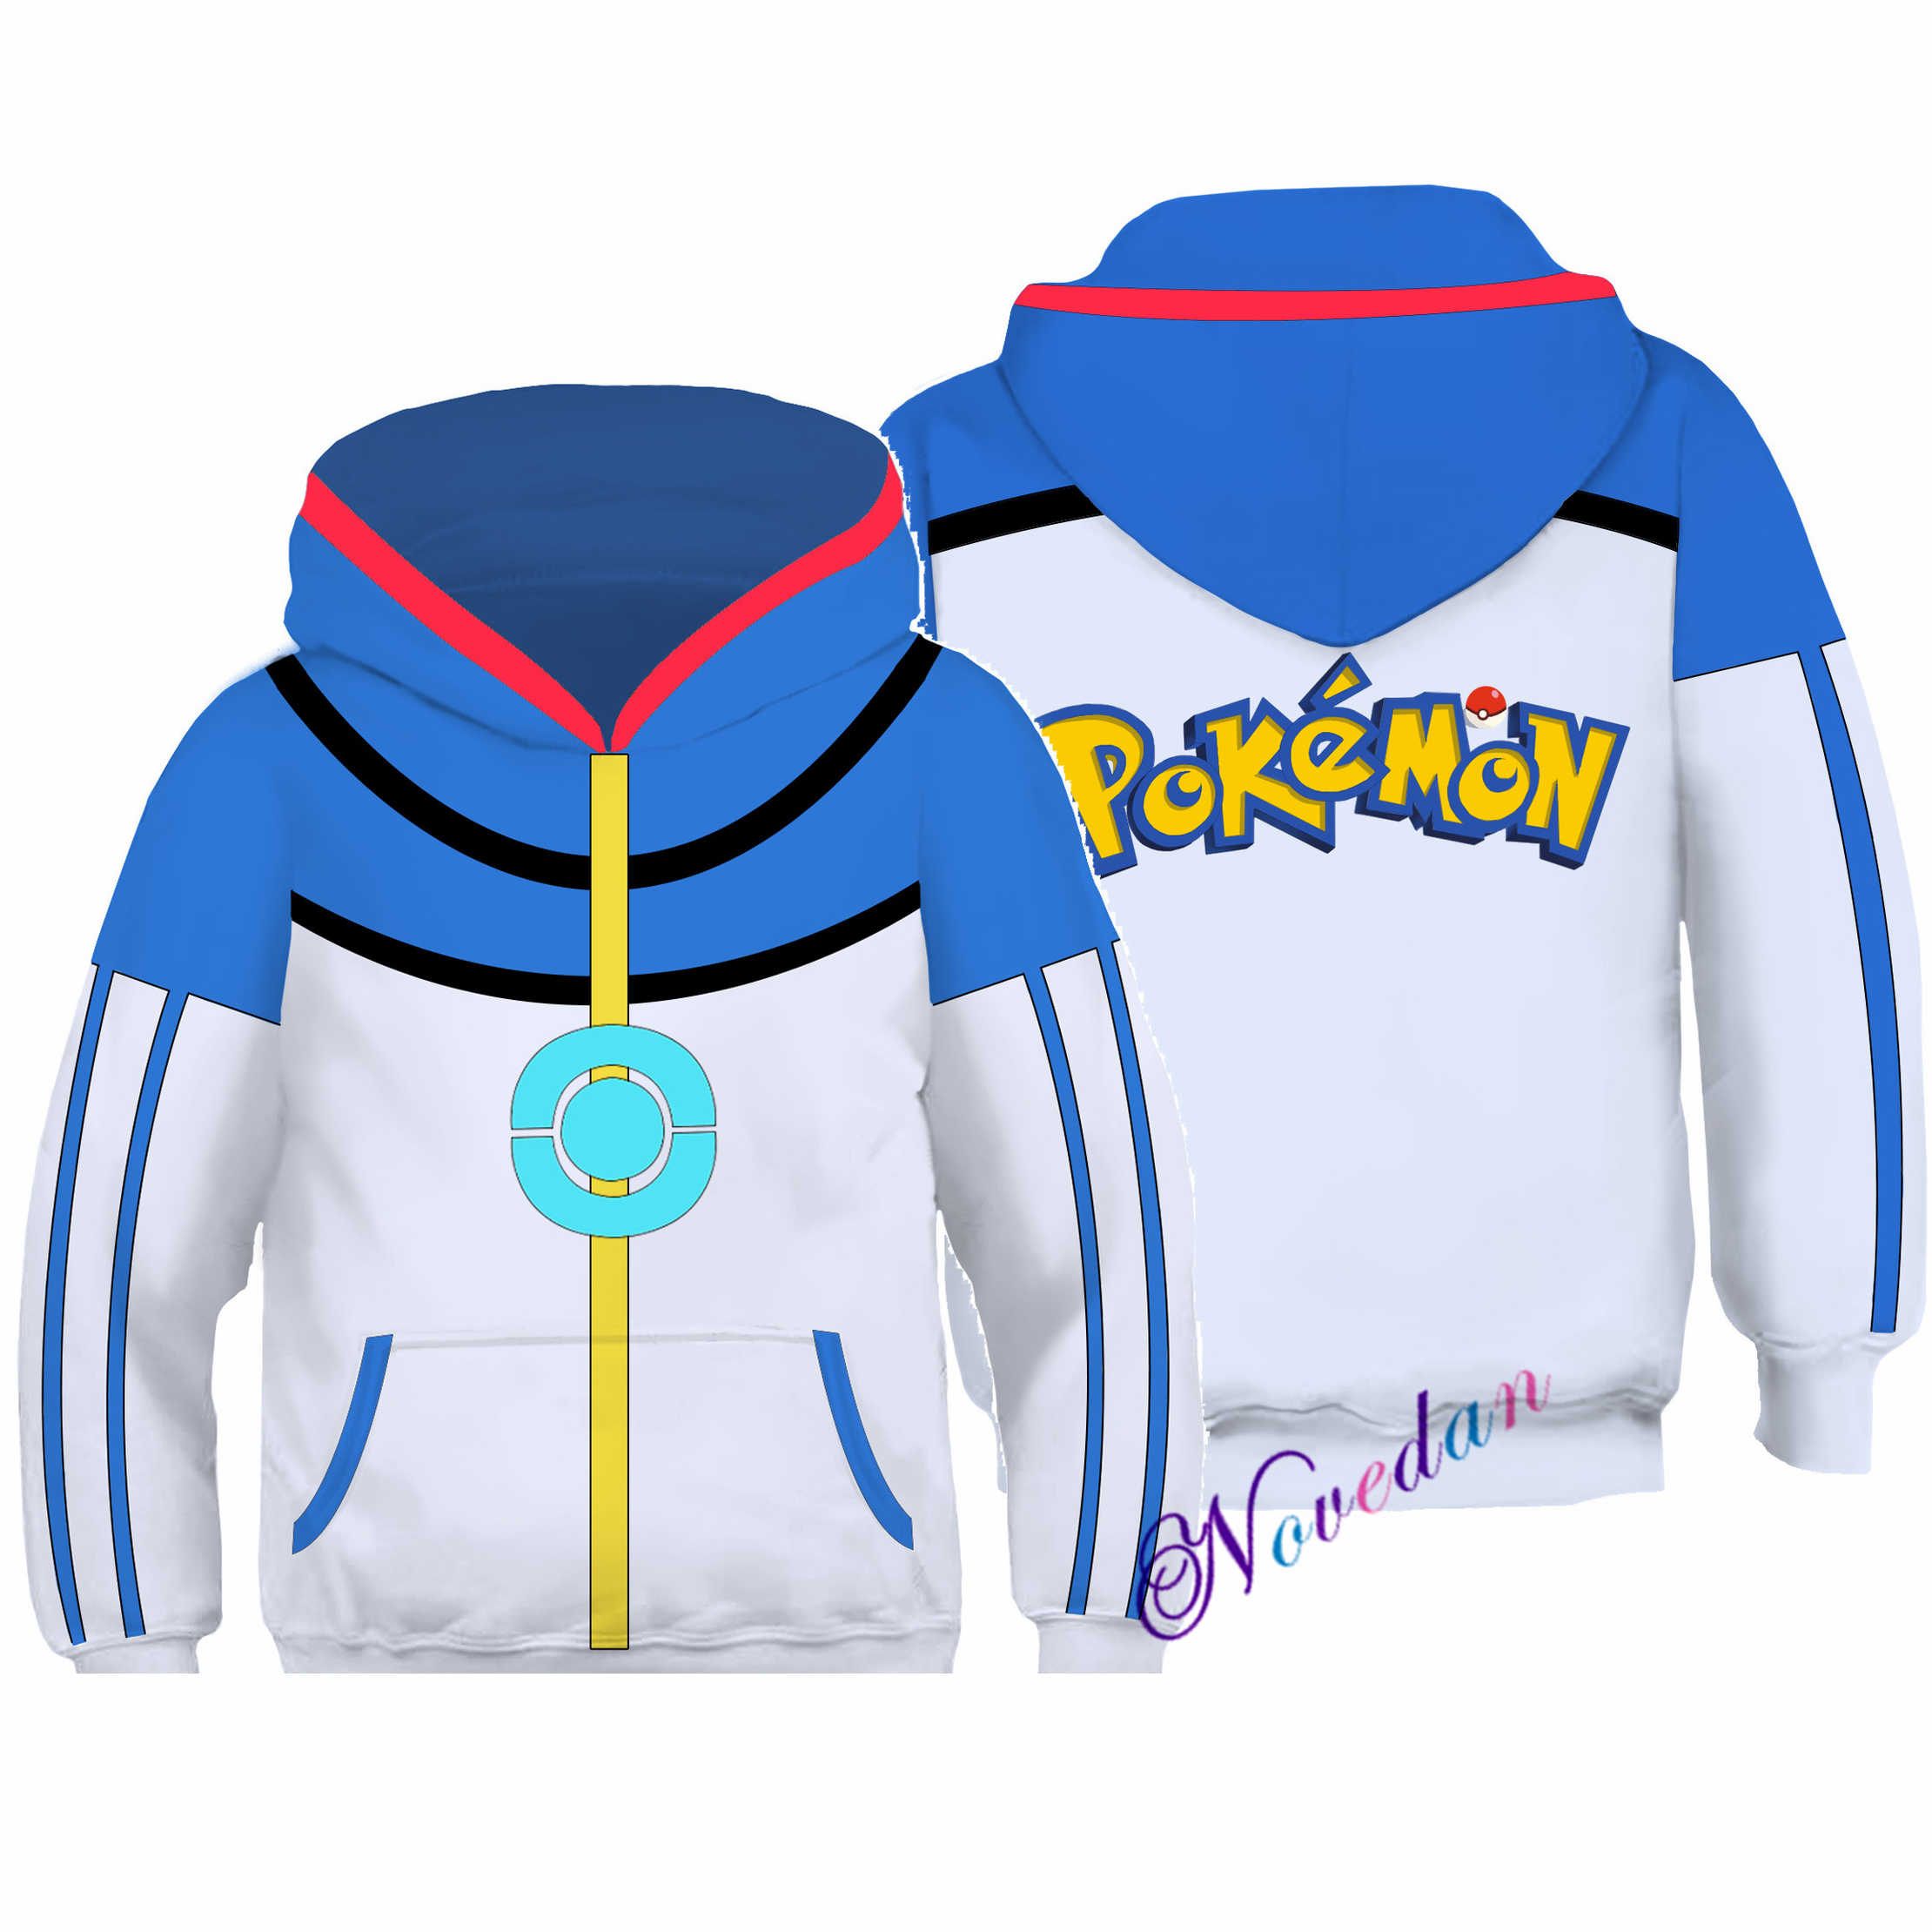 Enfants Pokemon Ash Ketchum Cosplay Costume japonais sweat à capuche anime sweat garçons enfant Halloween noël pull veste